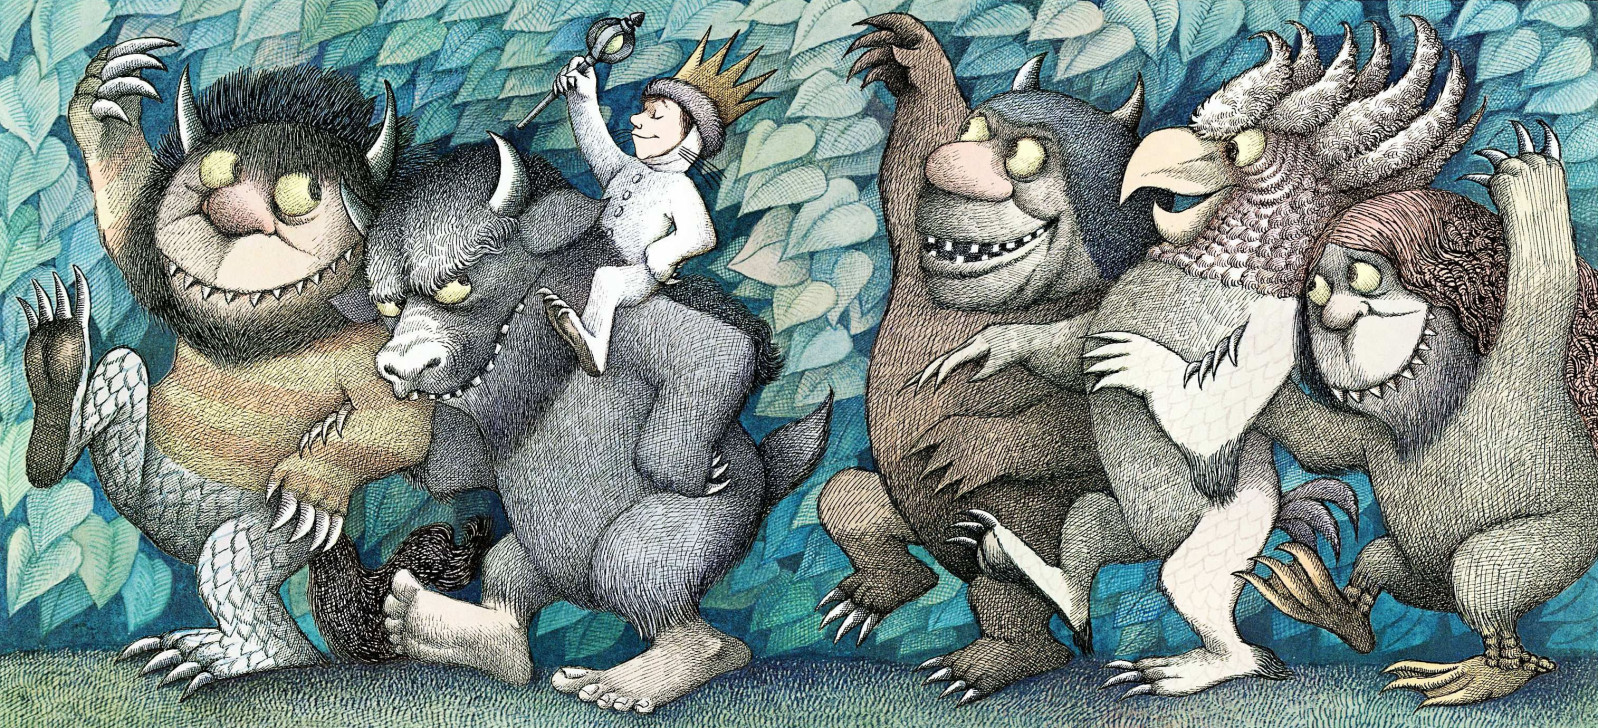 High Resolution Wallpaper | Where The Wild Things Are 1598x728 px